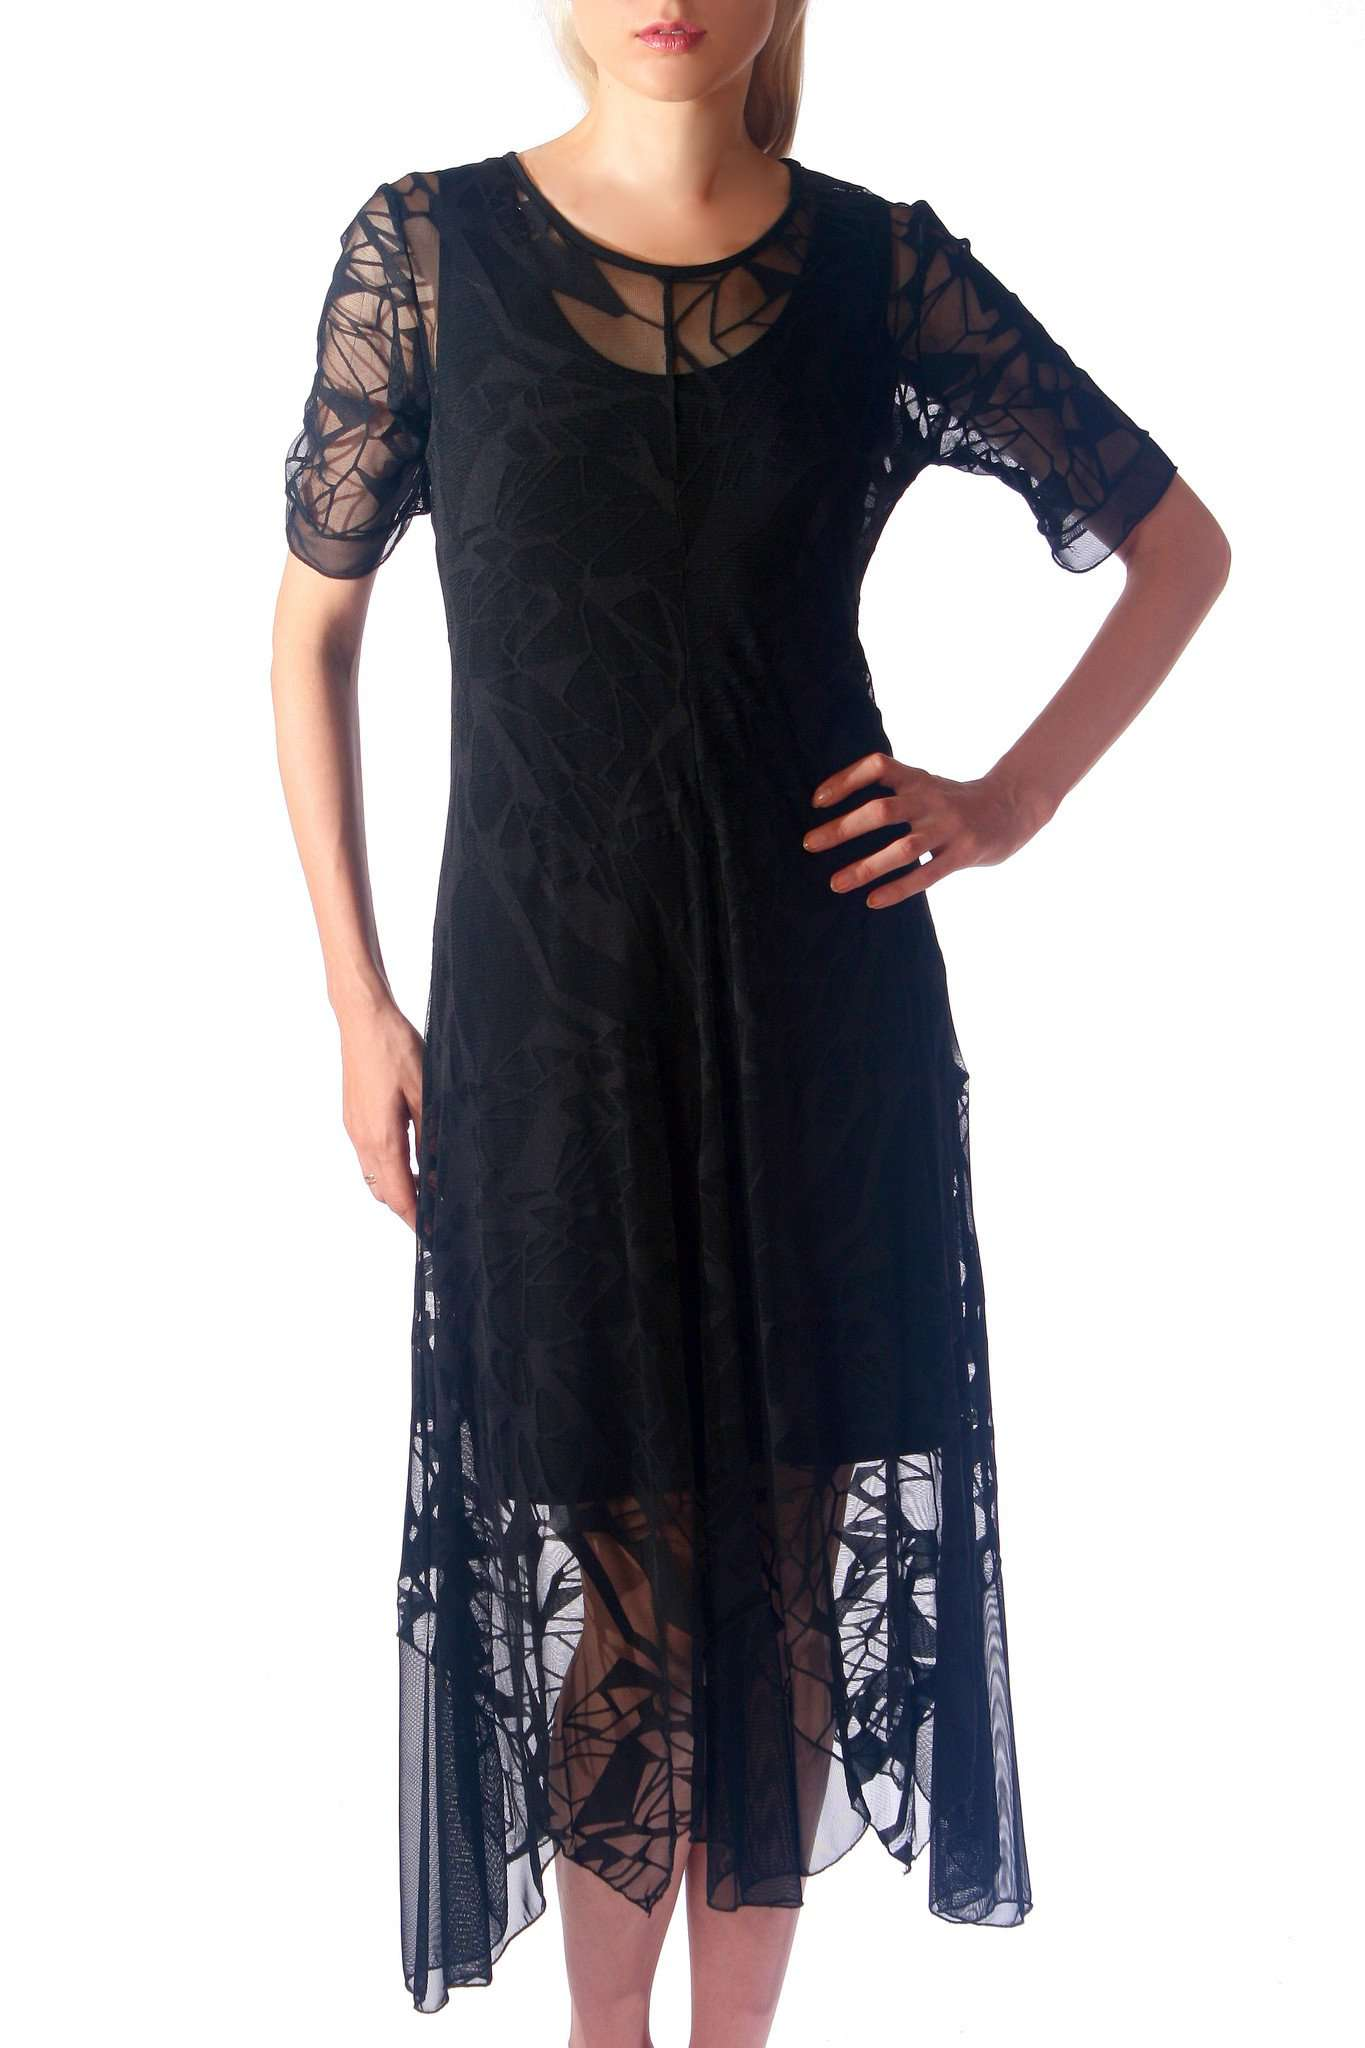 Black Lace Dress Elegant for Wedding 2 Pc Set